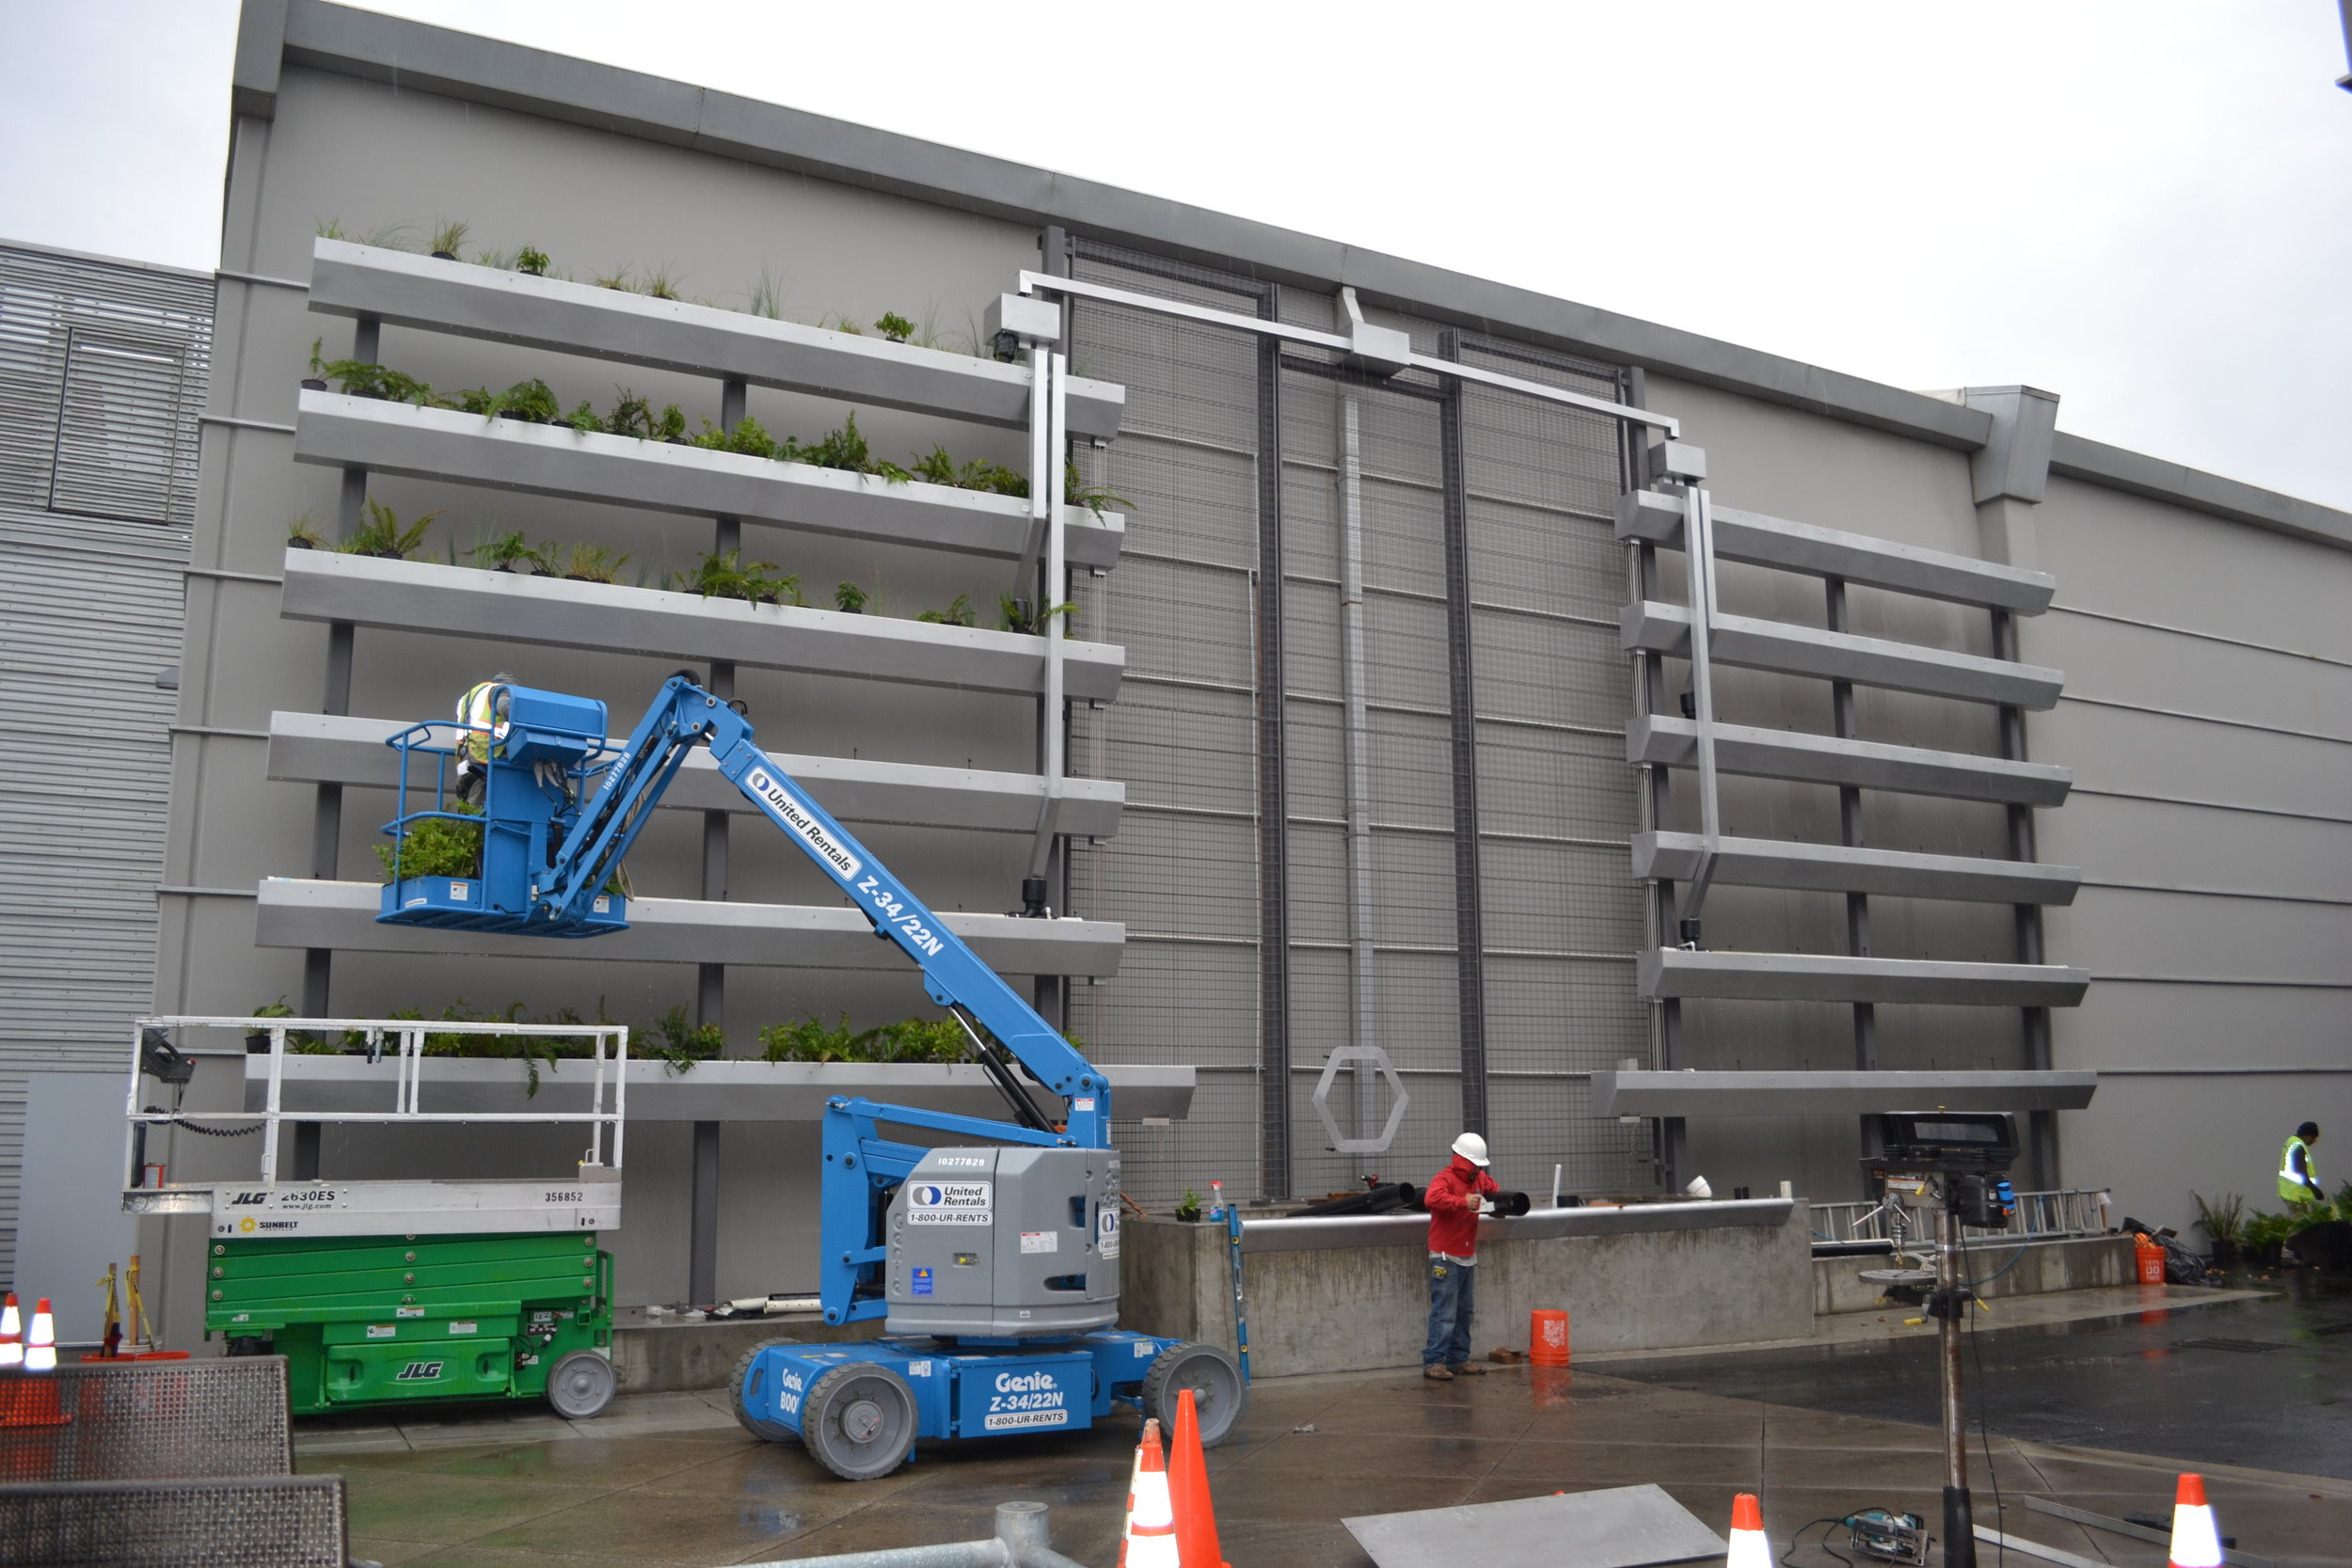 Stormwater wall under construction using cherry picker with men in hardhats